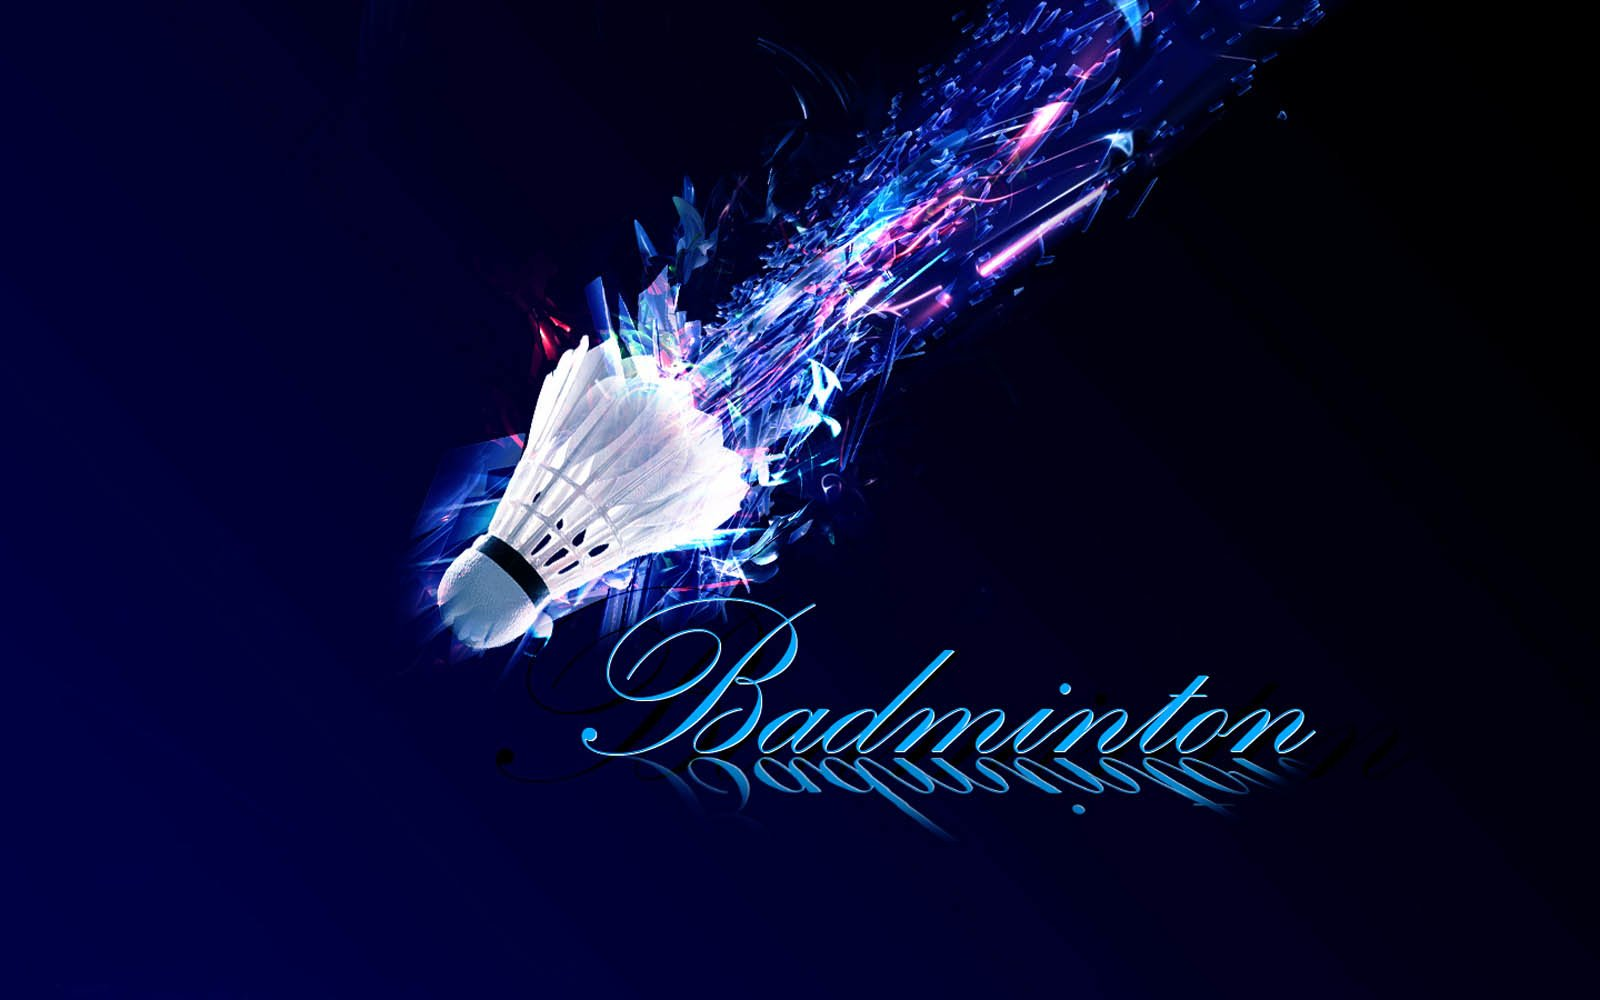 13 badminton hd wallpapers background images wallpaper abyss